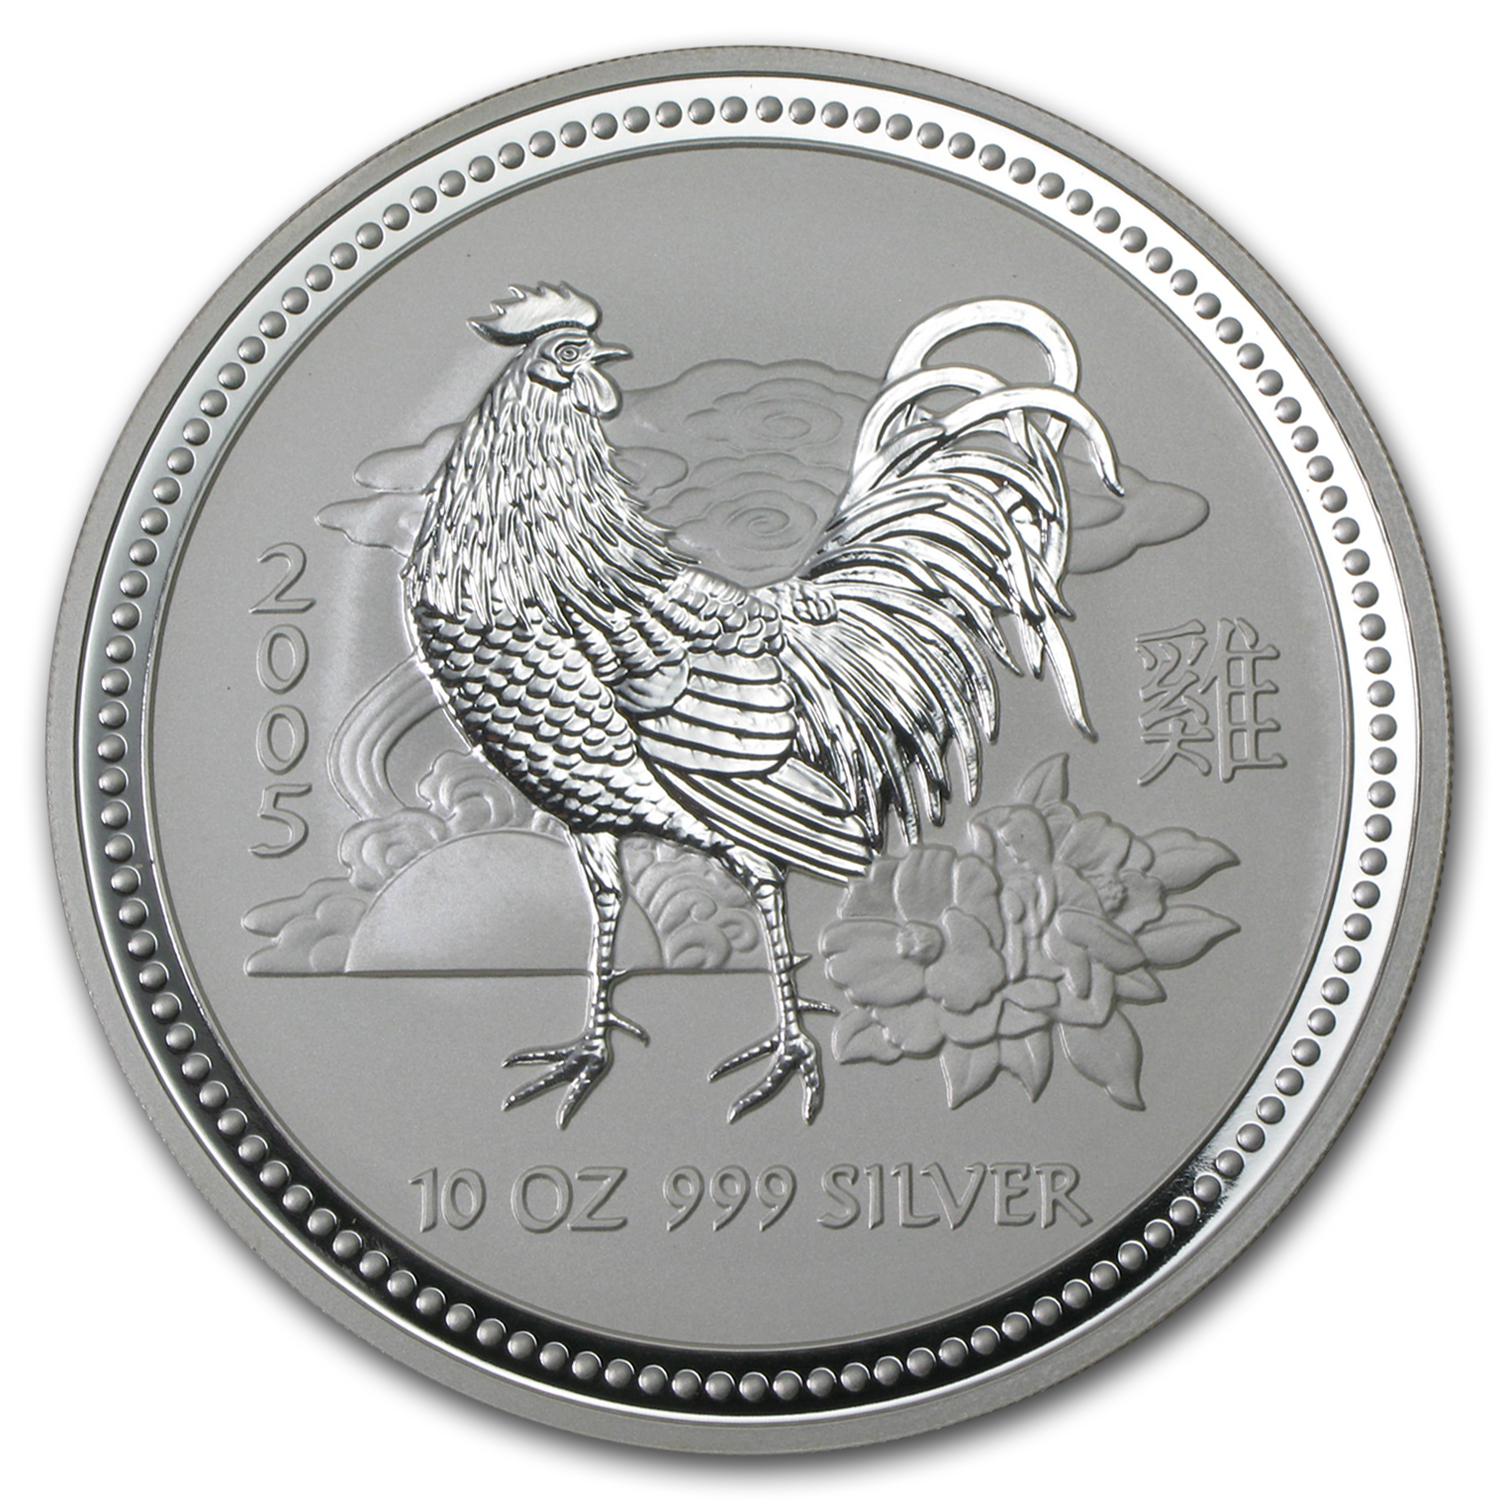 2005 10 oz Silver Australian Year of the Rooster BU